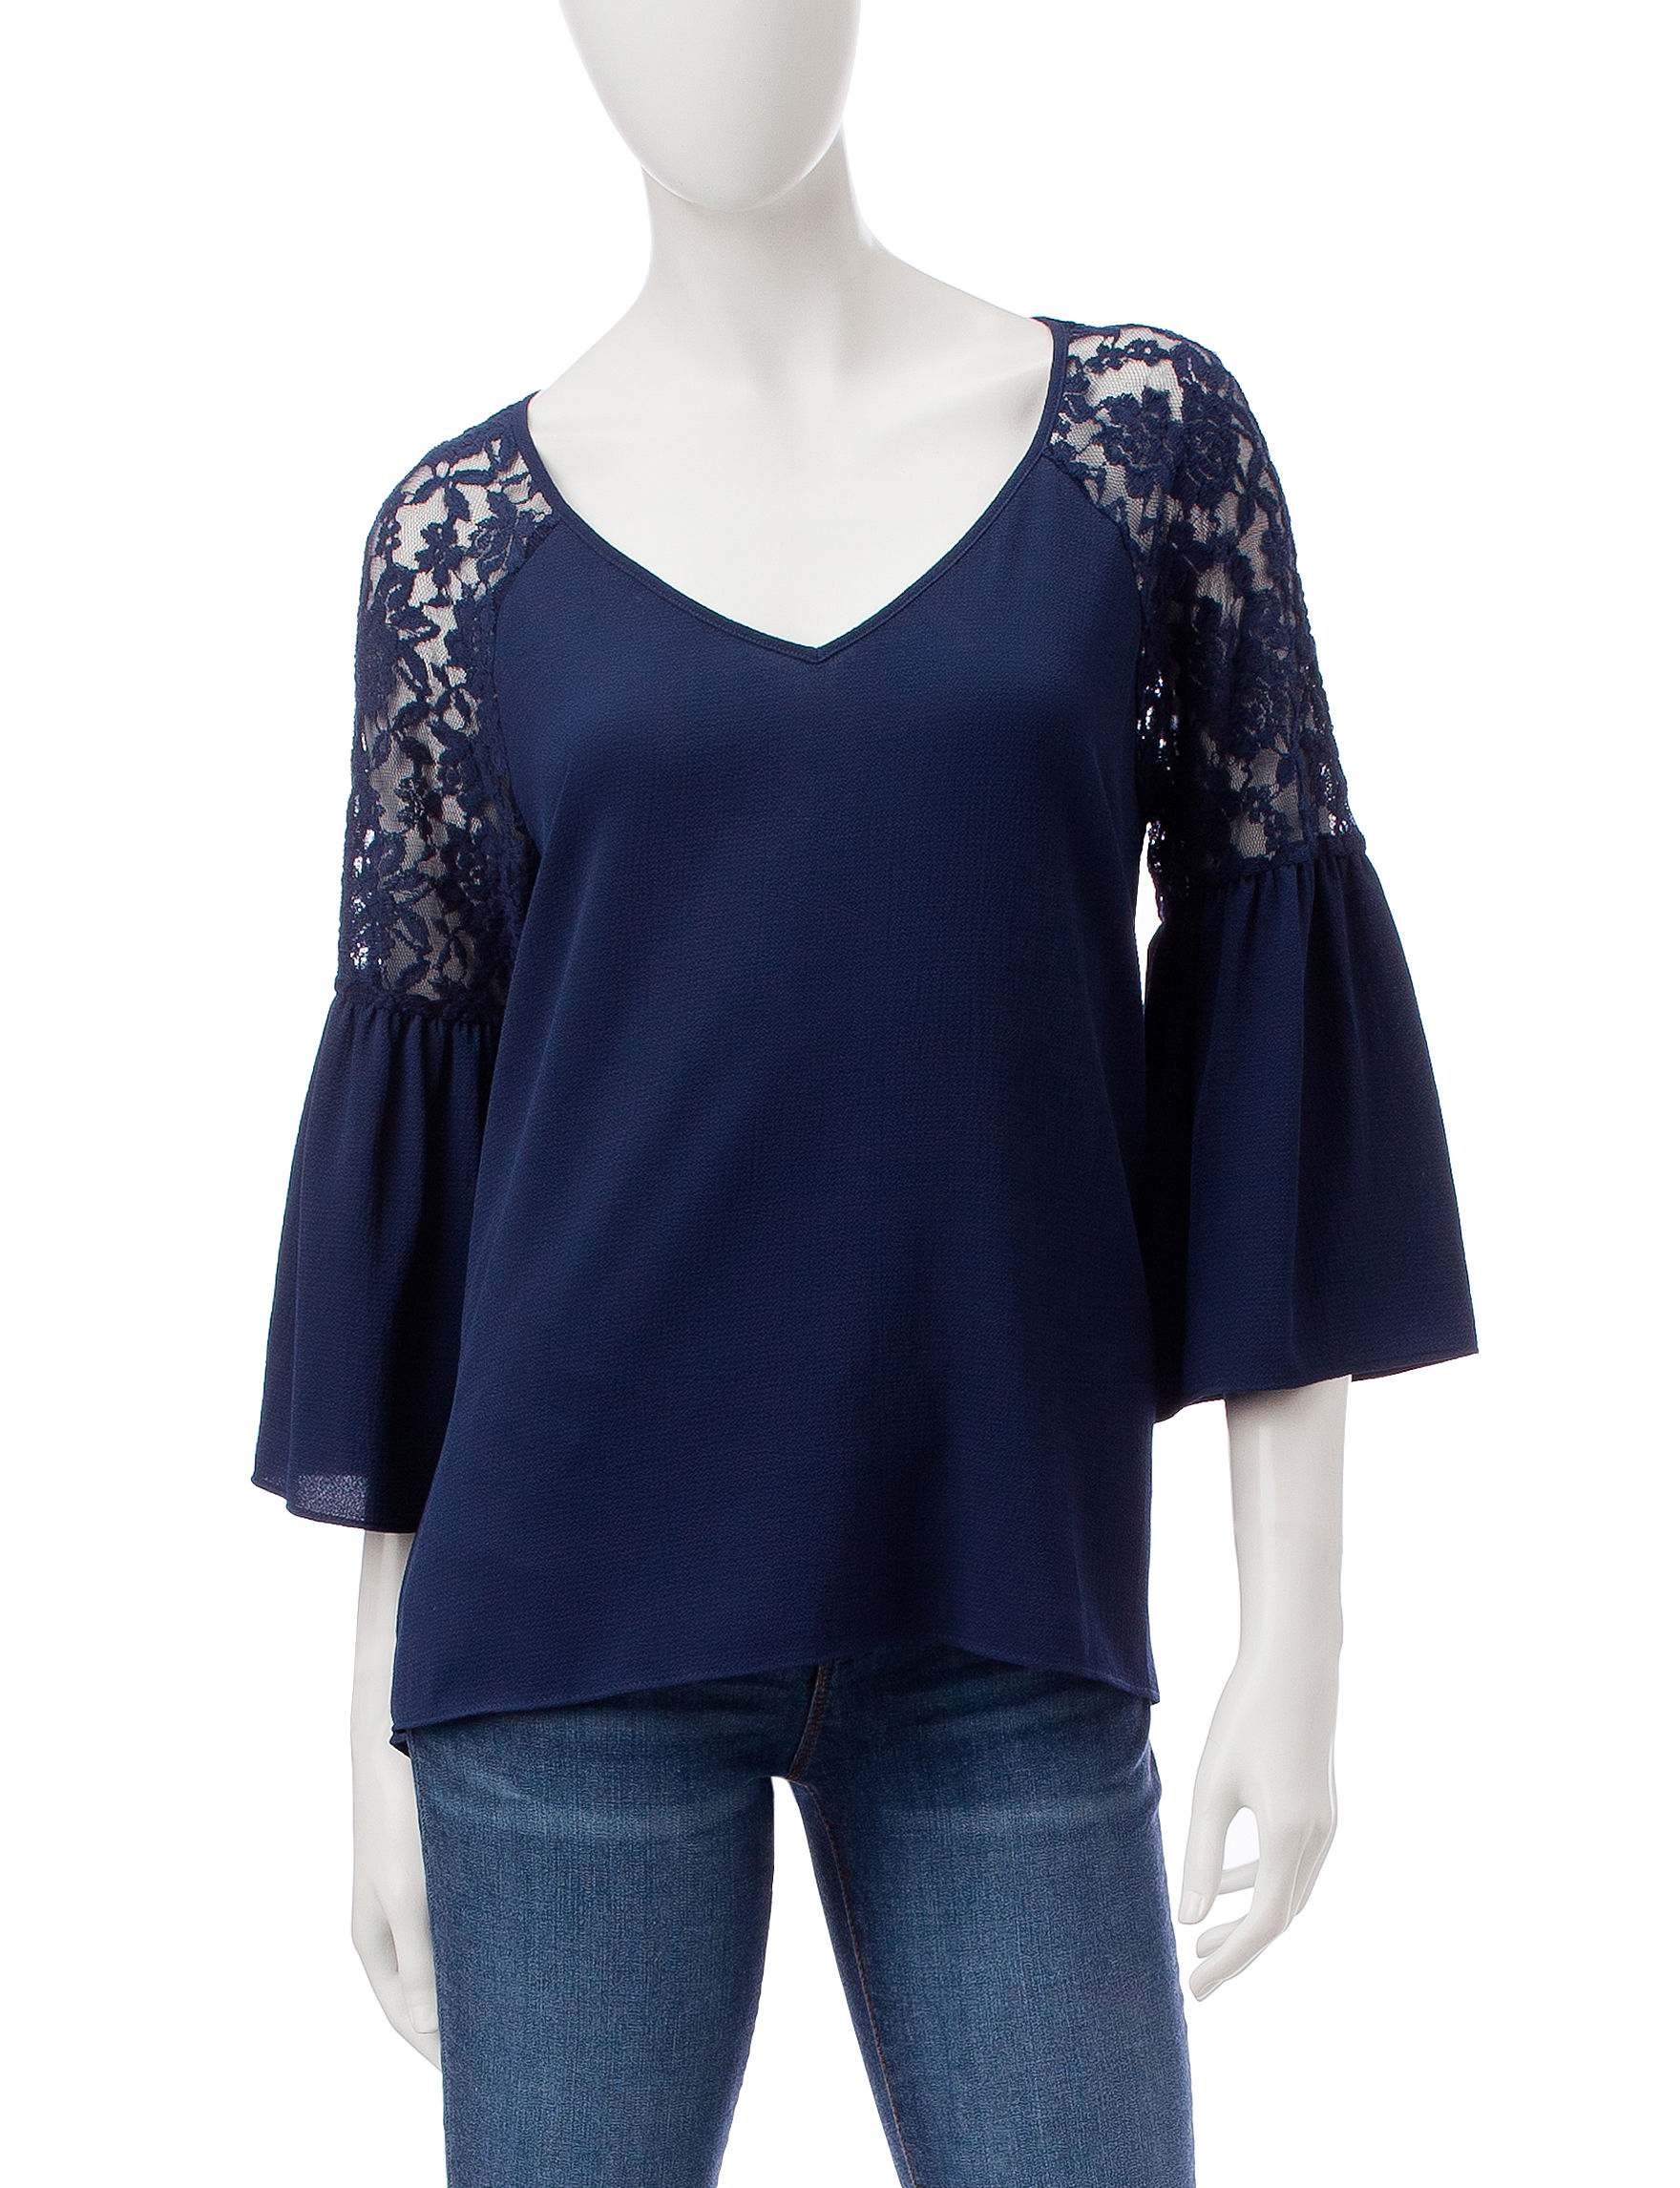 Signature Studio Navy Shirts & Blouses